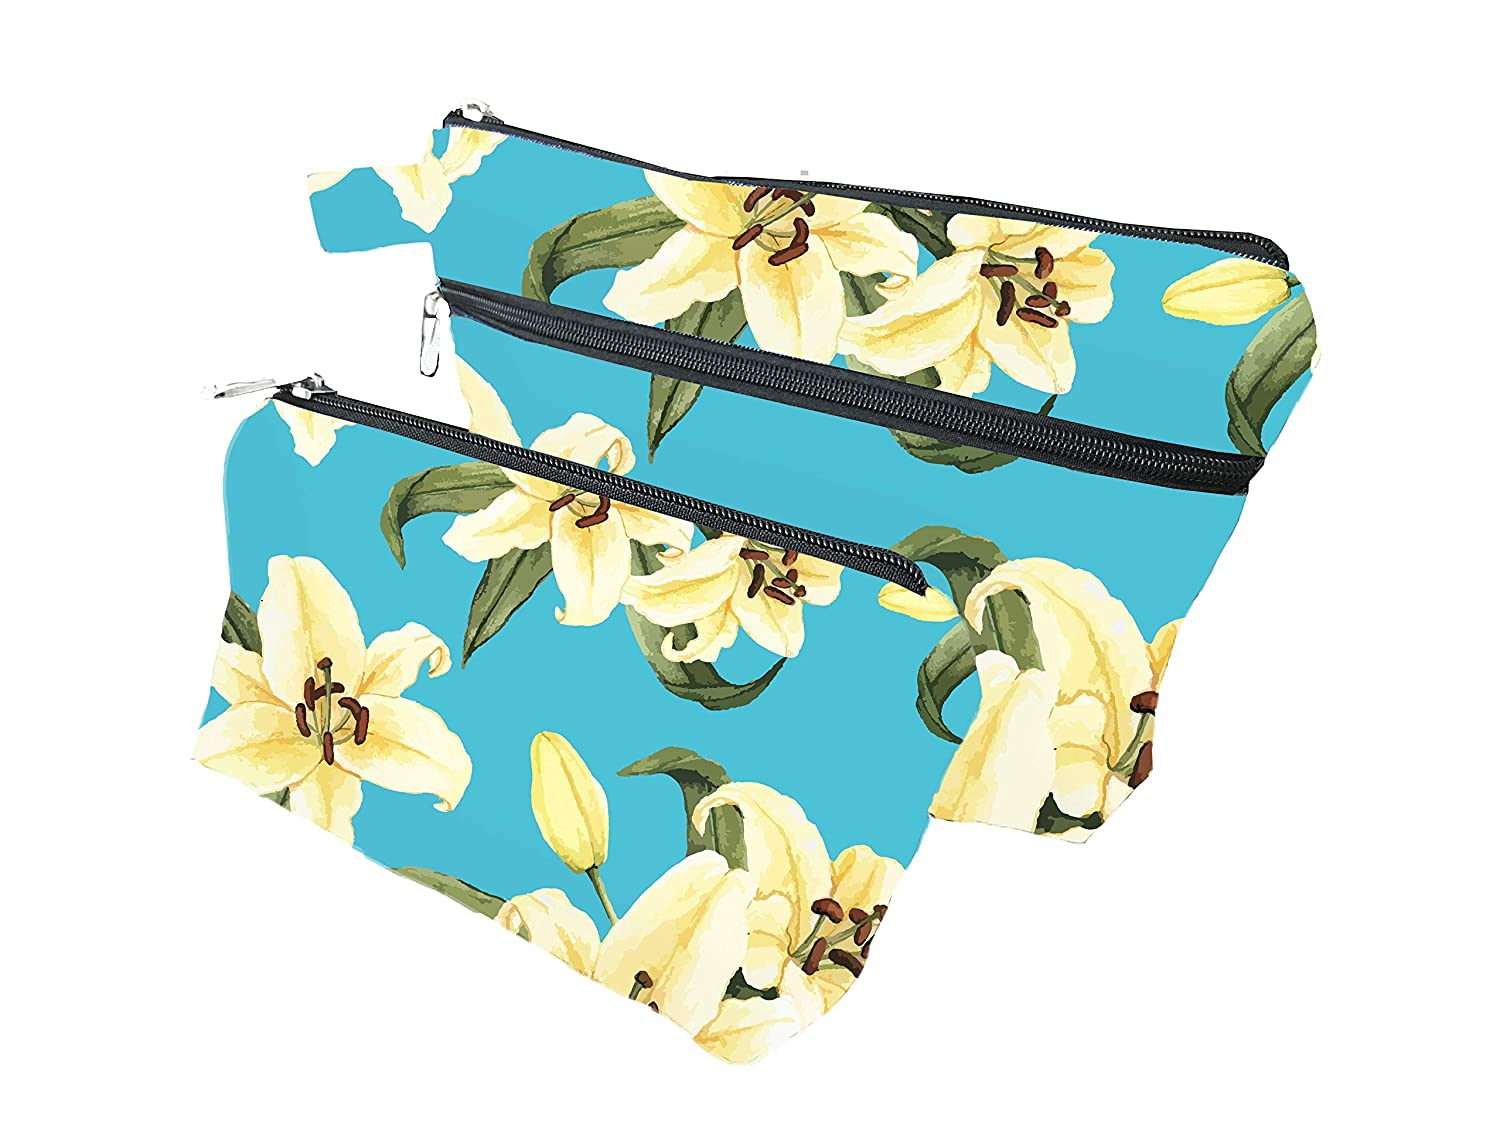 Lily Zippered Pouches for Women and Men - Enhanced Bottom For Maximum Storage - Pencil Cases for Adults - Makeup Bags - Multipurpose Tool Bags With Strong Zippers And Compartments (Pack of 2)